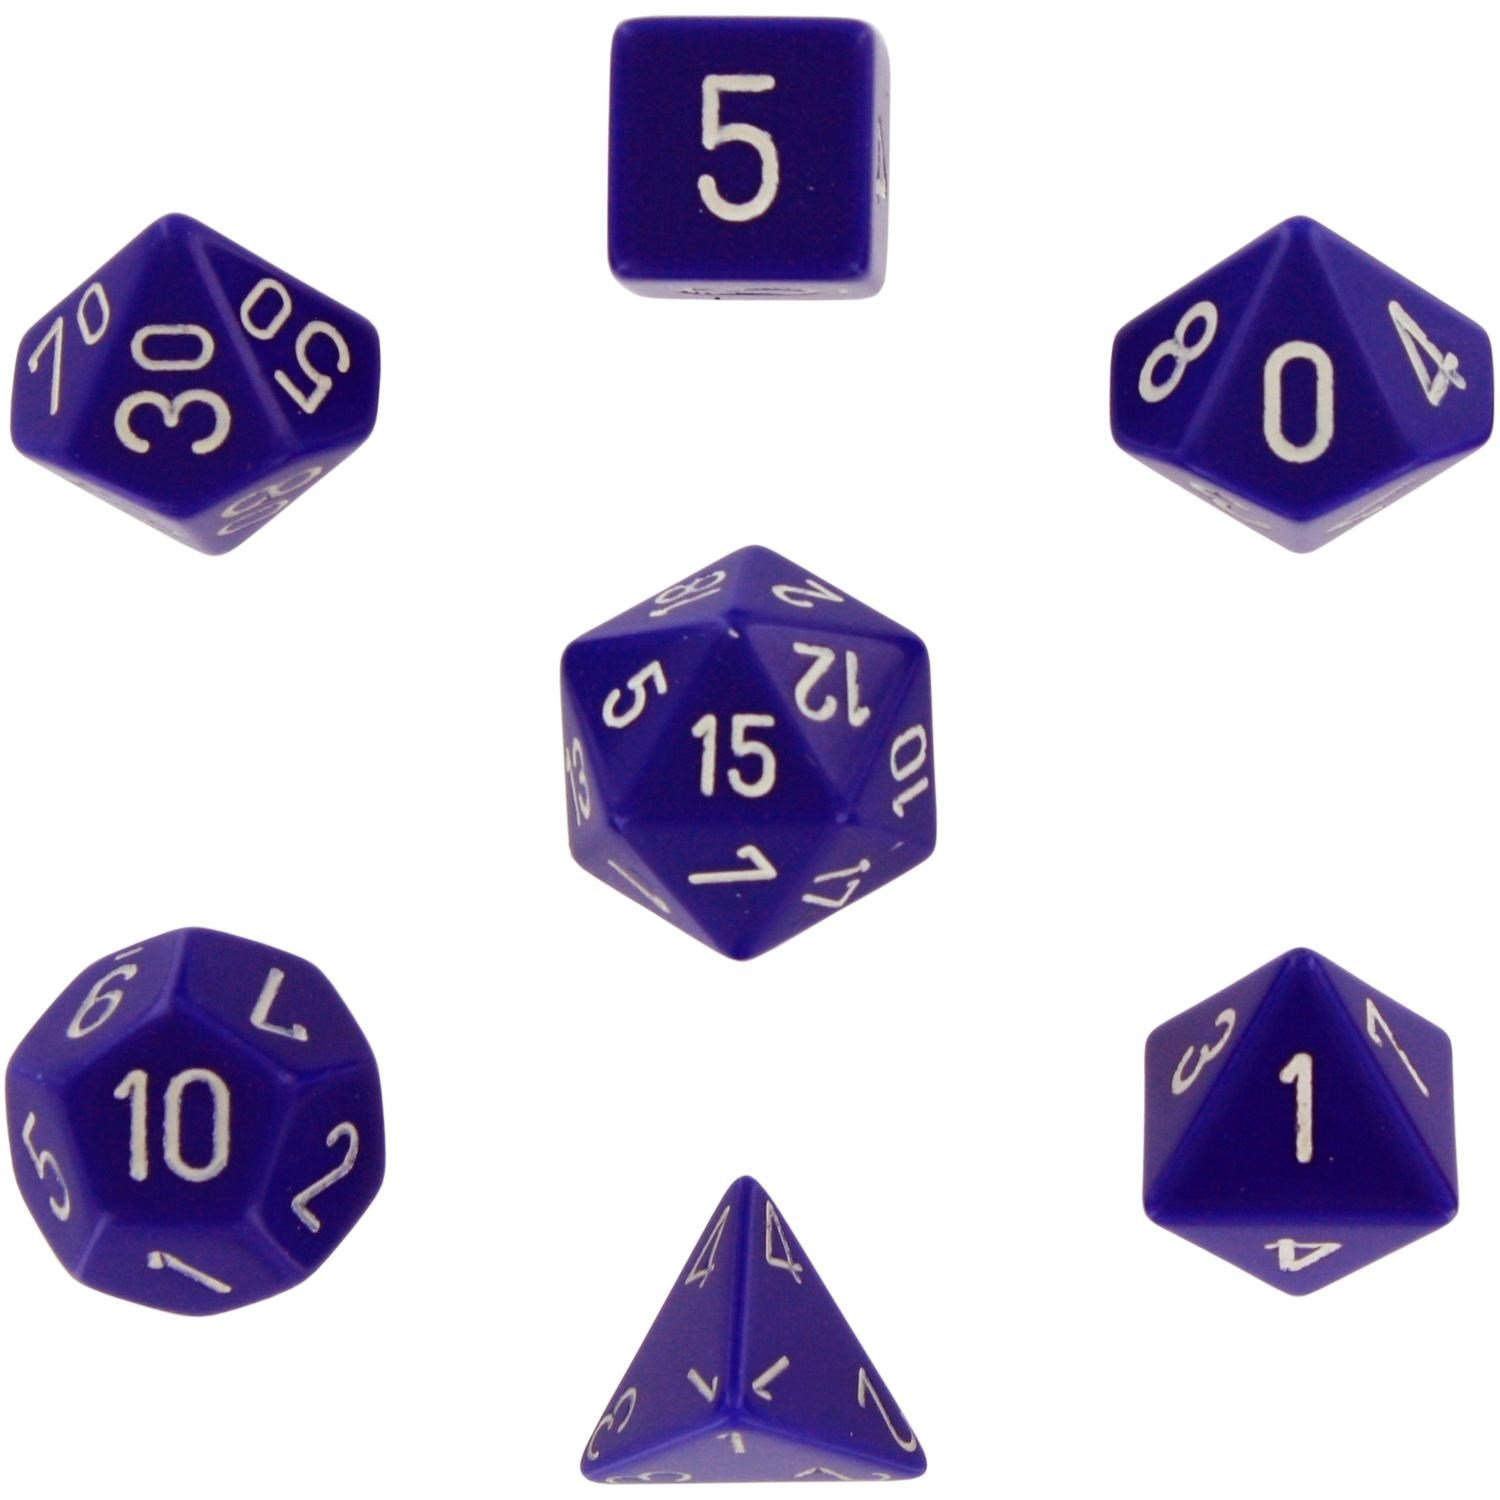 Purple with White CHX 25407 Chessex Dice Polyhedral 7-Die Opaque Dice Set